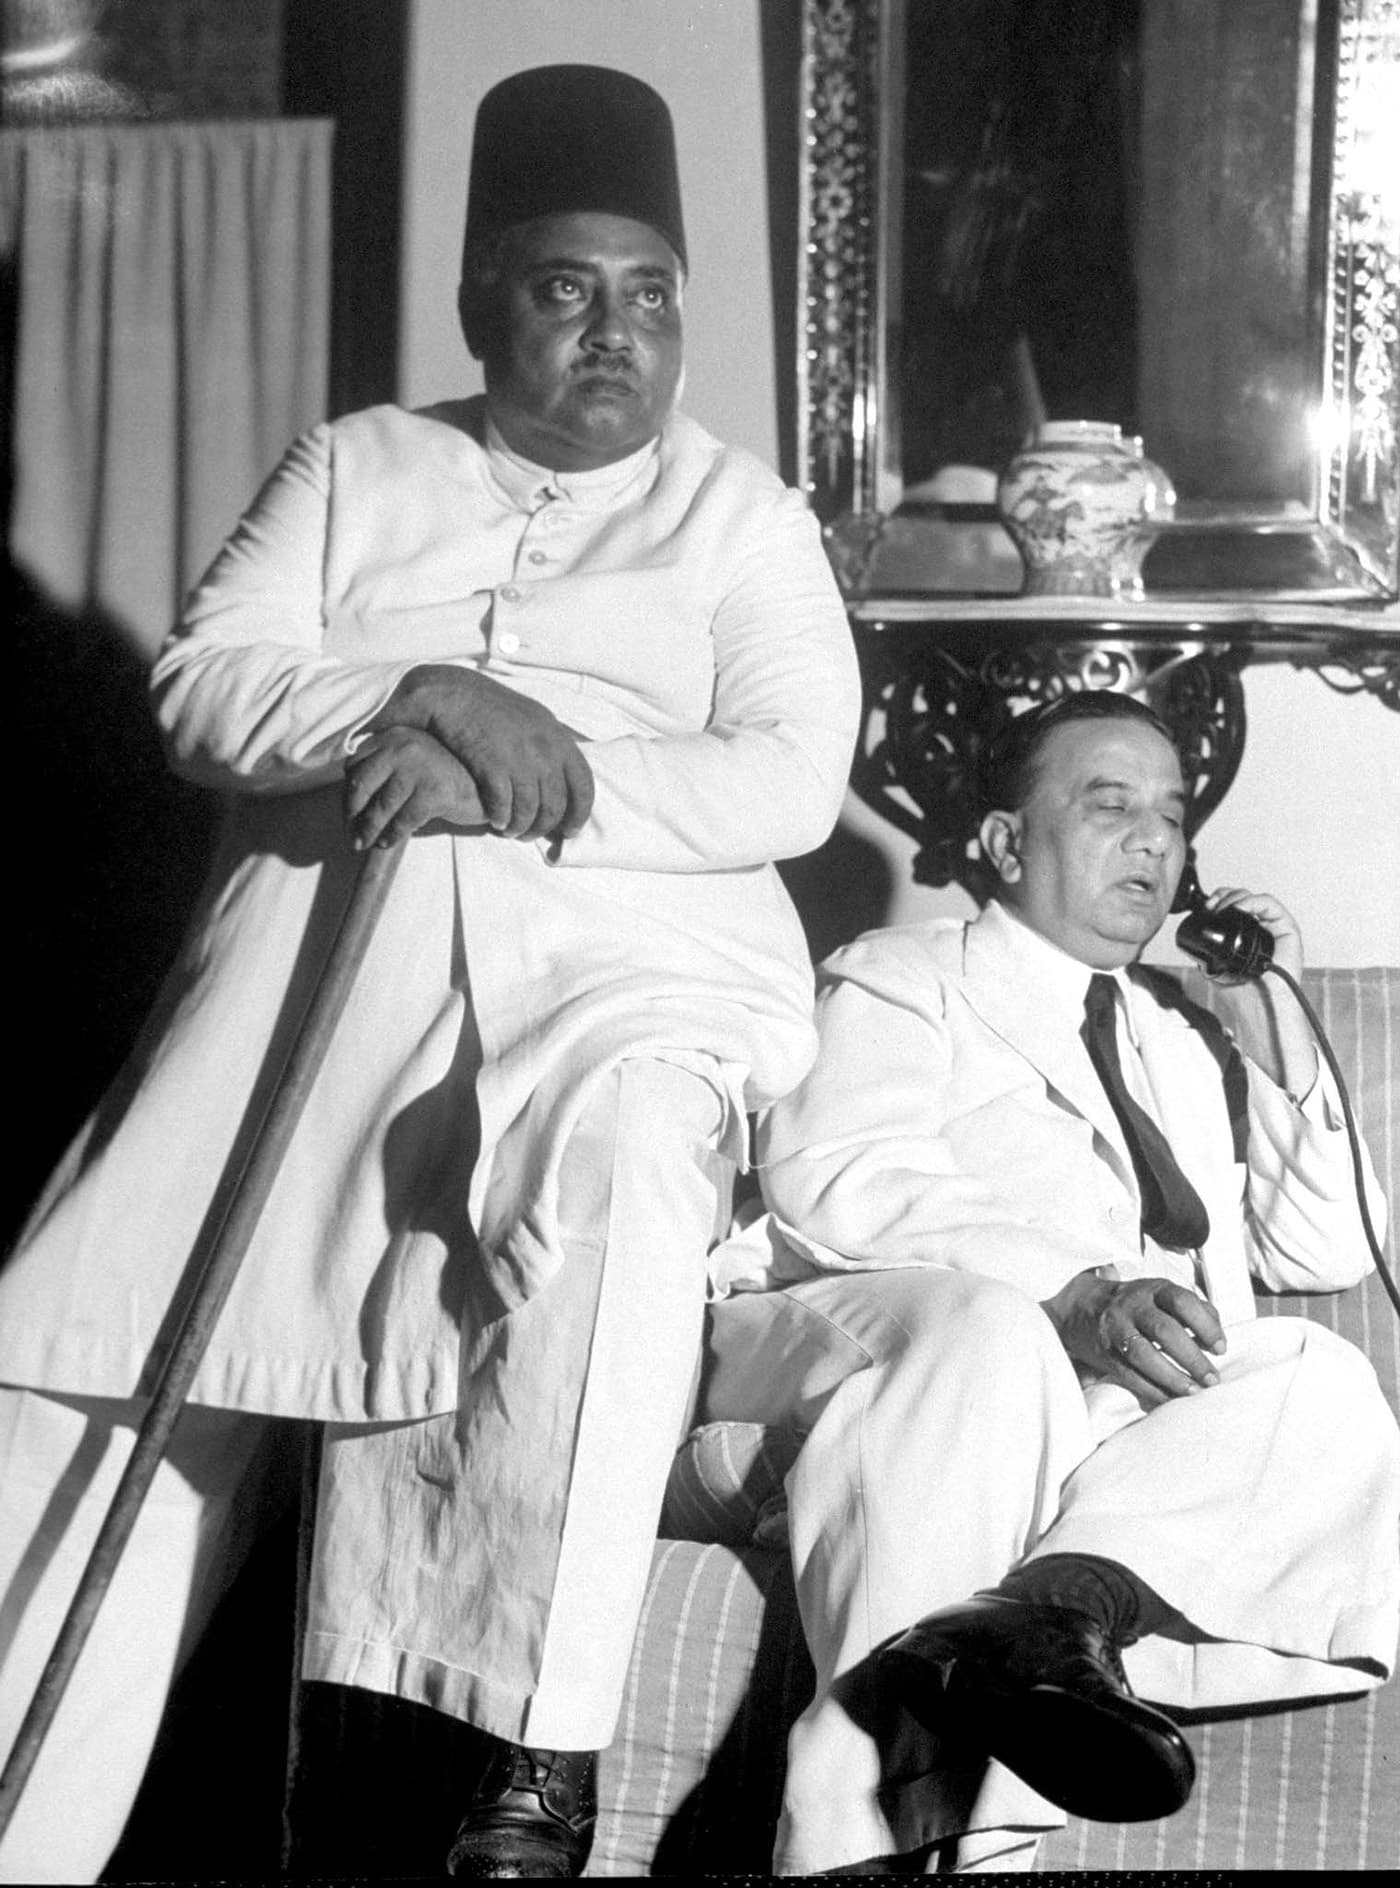 It is the eve of Direct Action Day. Bengal Premier, Huseyn Shaheed Suhrawardy (right), is engrossed in a telephone conversation at his residence in Calcutta. Khawaja Nazimuddin, his predecessor, is seated next to him. — Excerpted with permission from Witness to Life and Freedom, Roli Books, Delhi